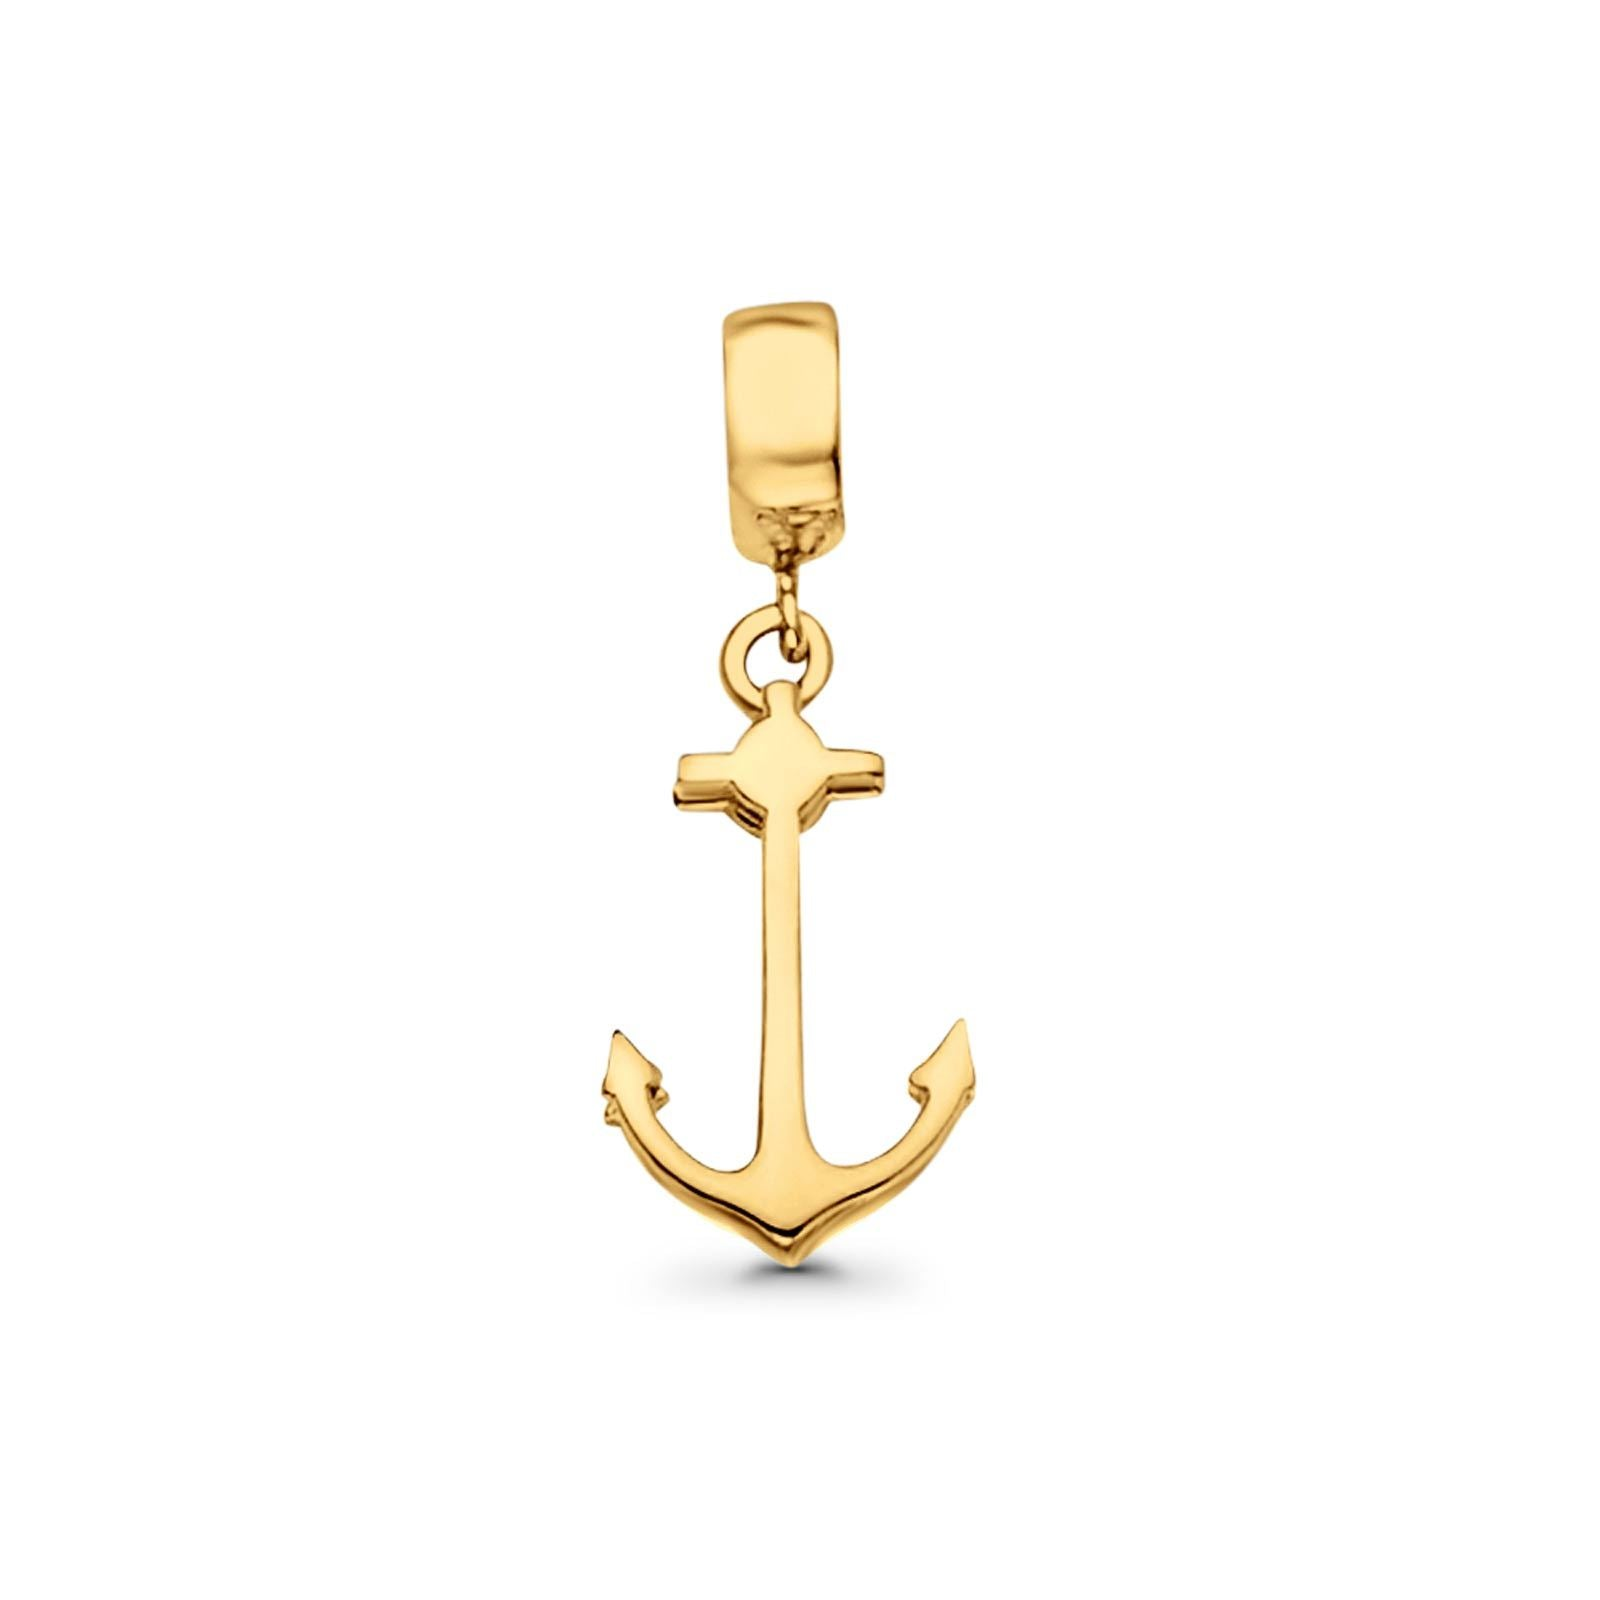 1.1 grams 14K Real Yellow Gold Anchor Charm Pendant 24mmX9mm